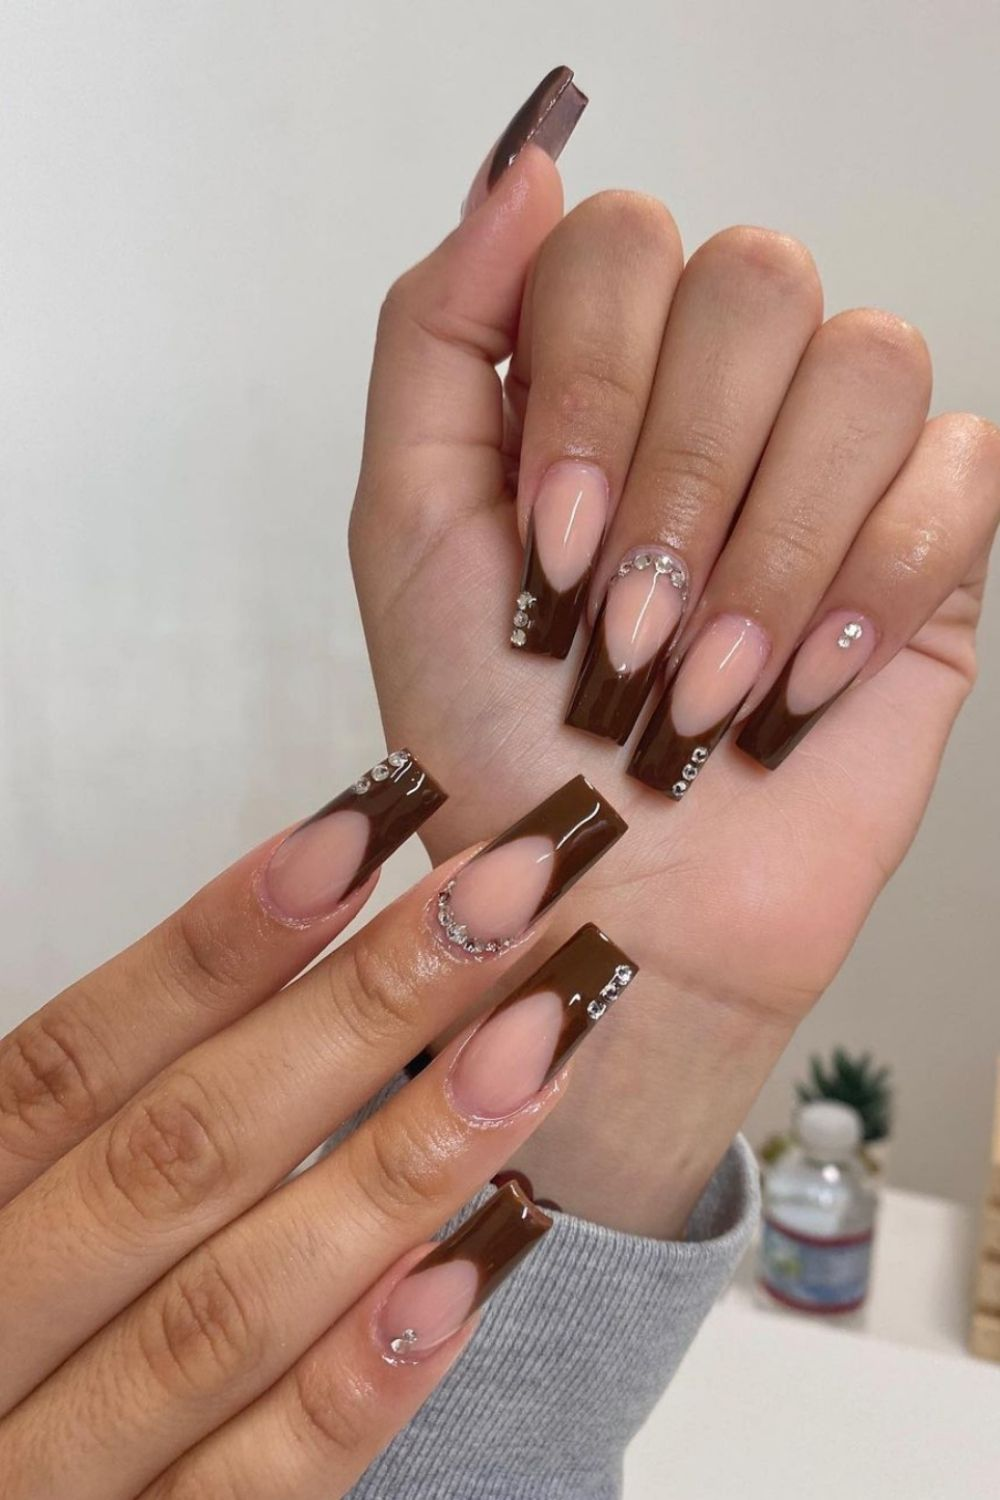 58 Pretty & Trendy Fall nail colors 2021 you'll love this Autumn